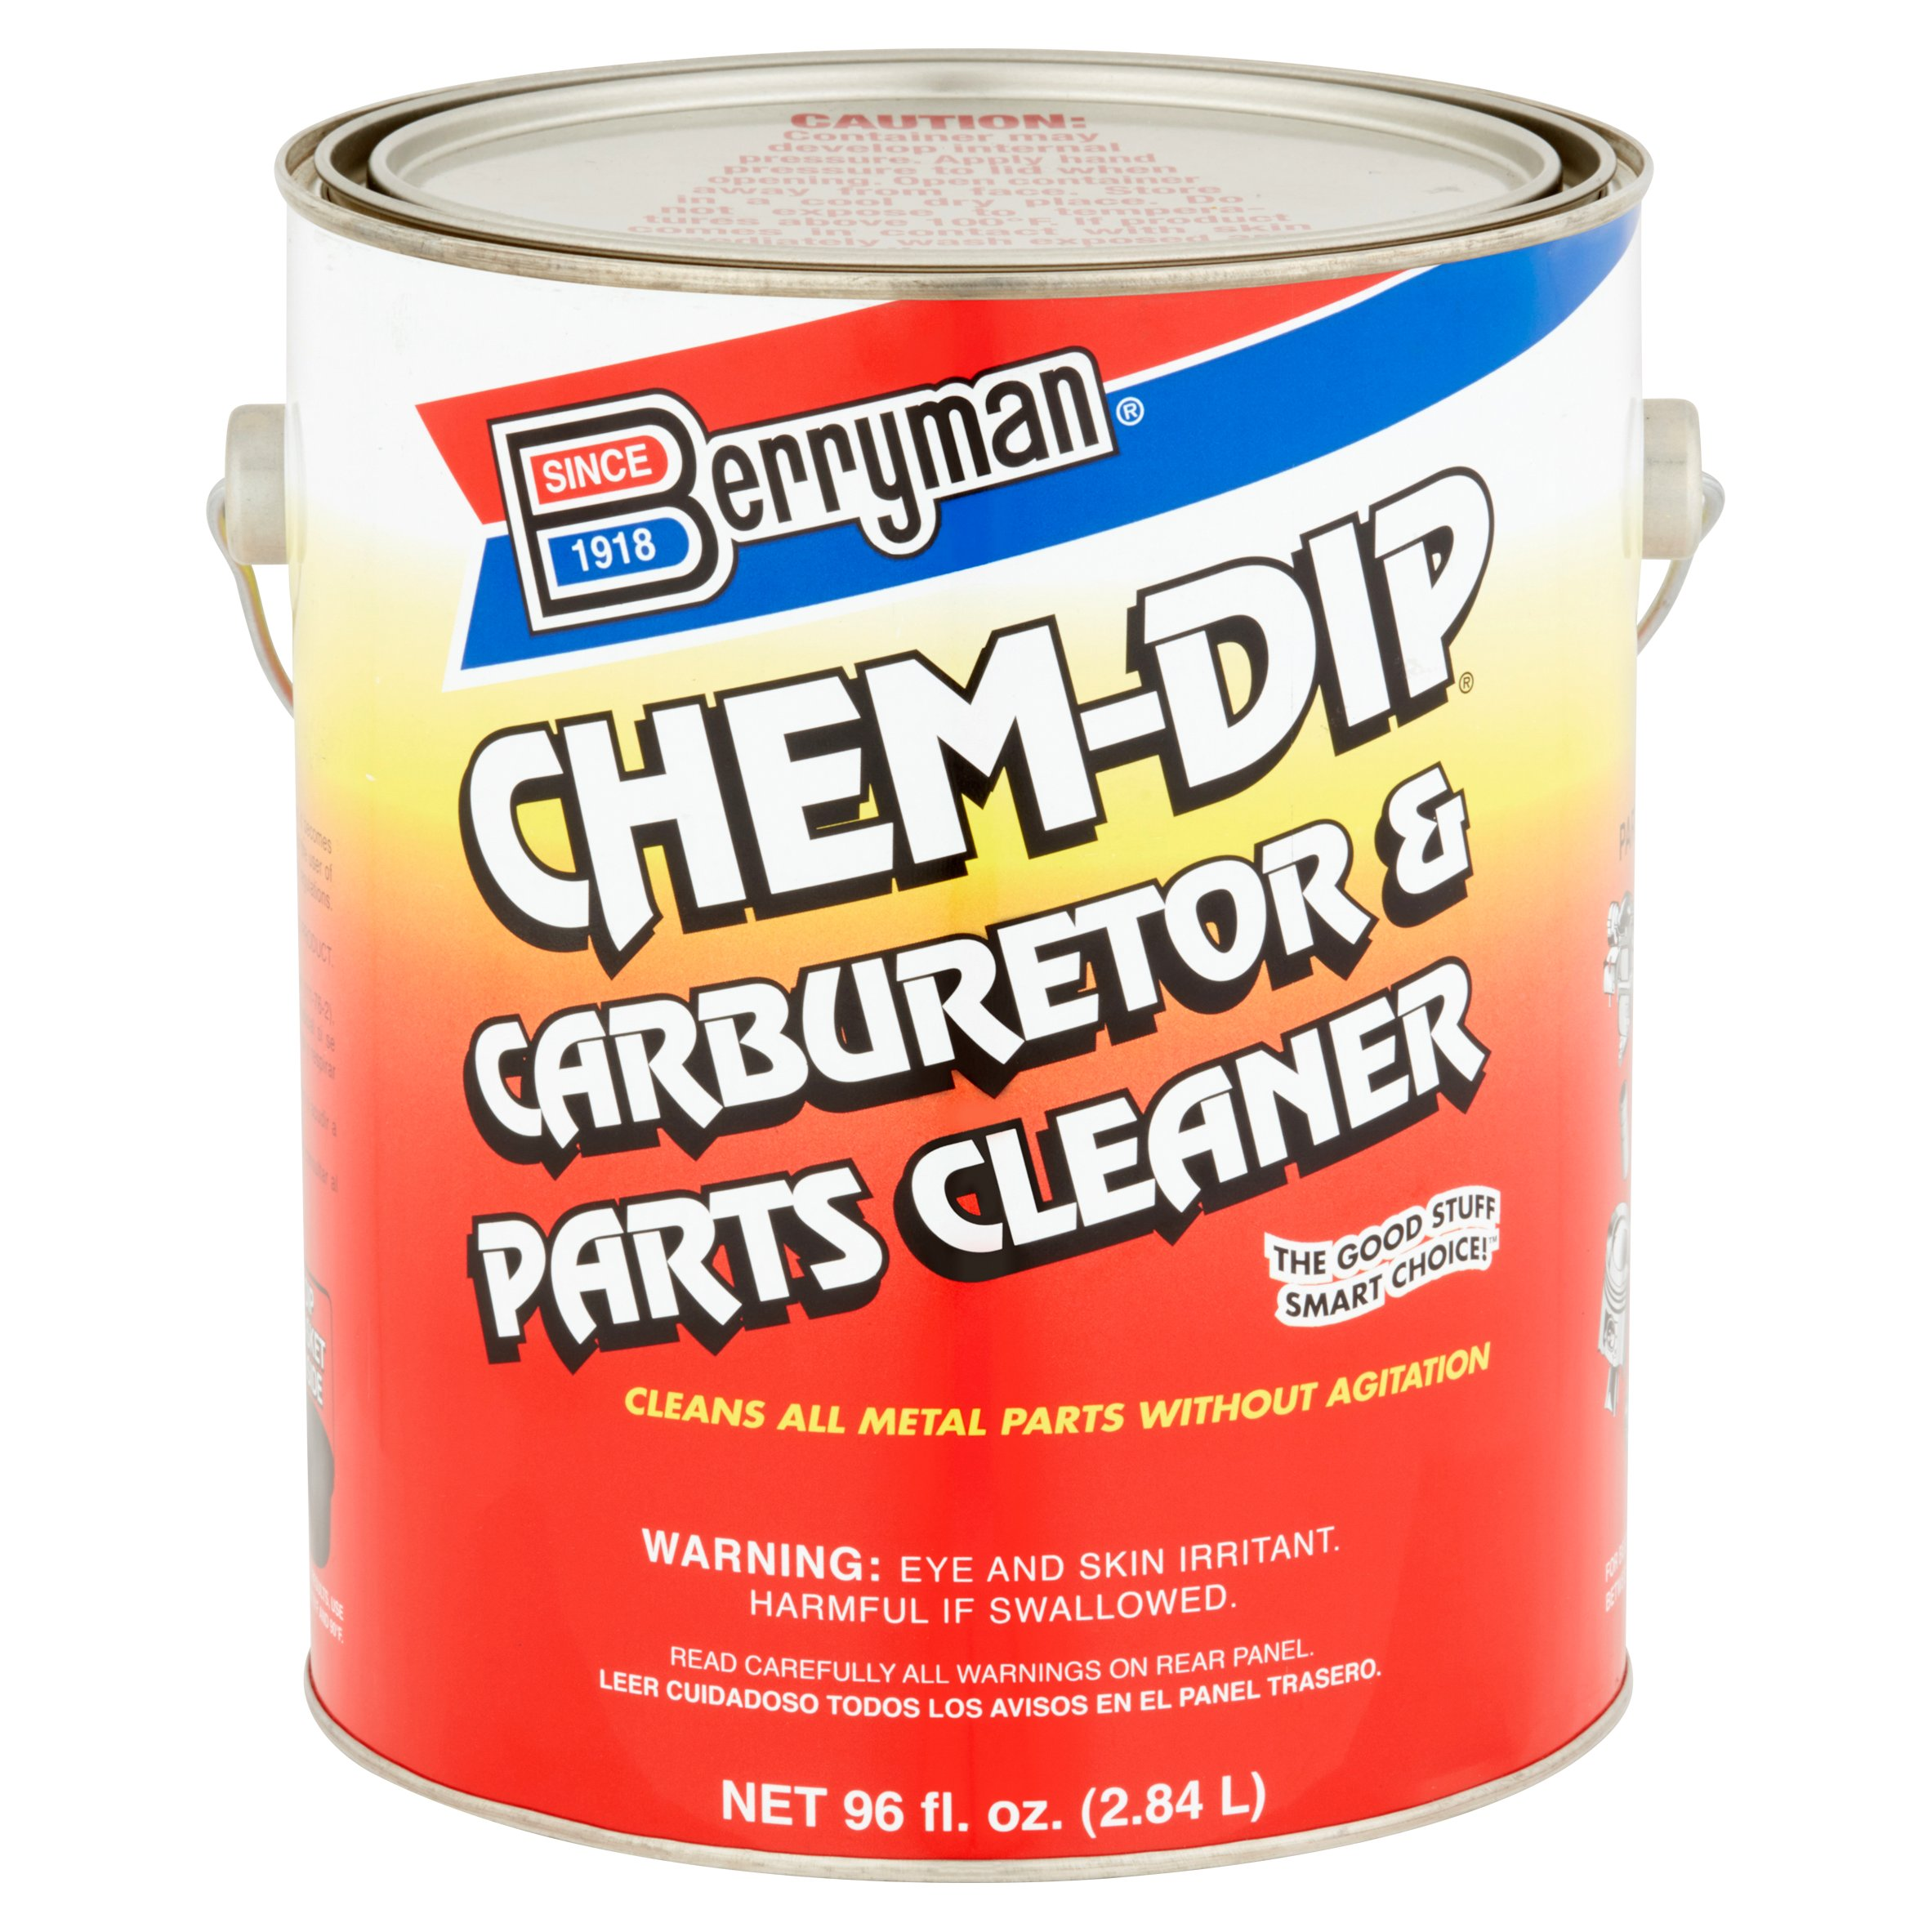 how to use carburetor cleaner on car